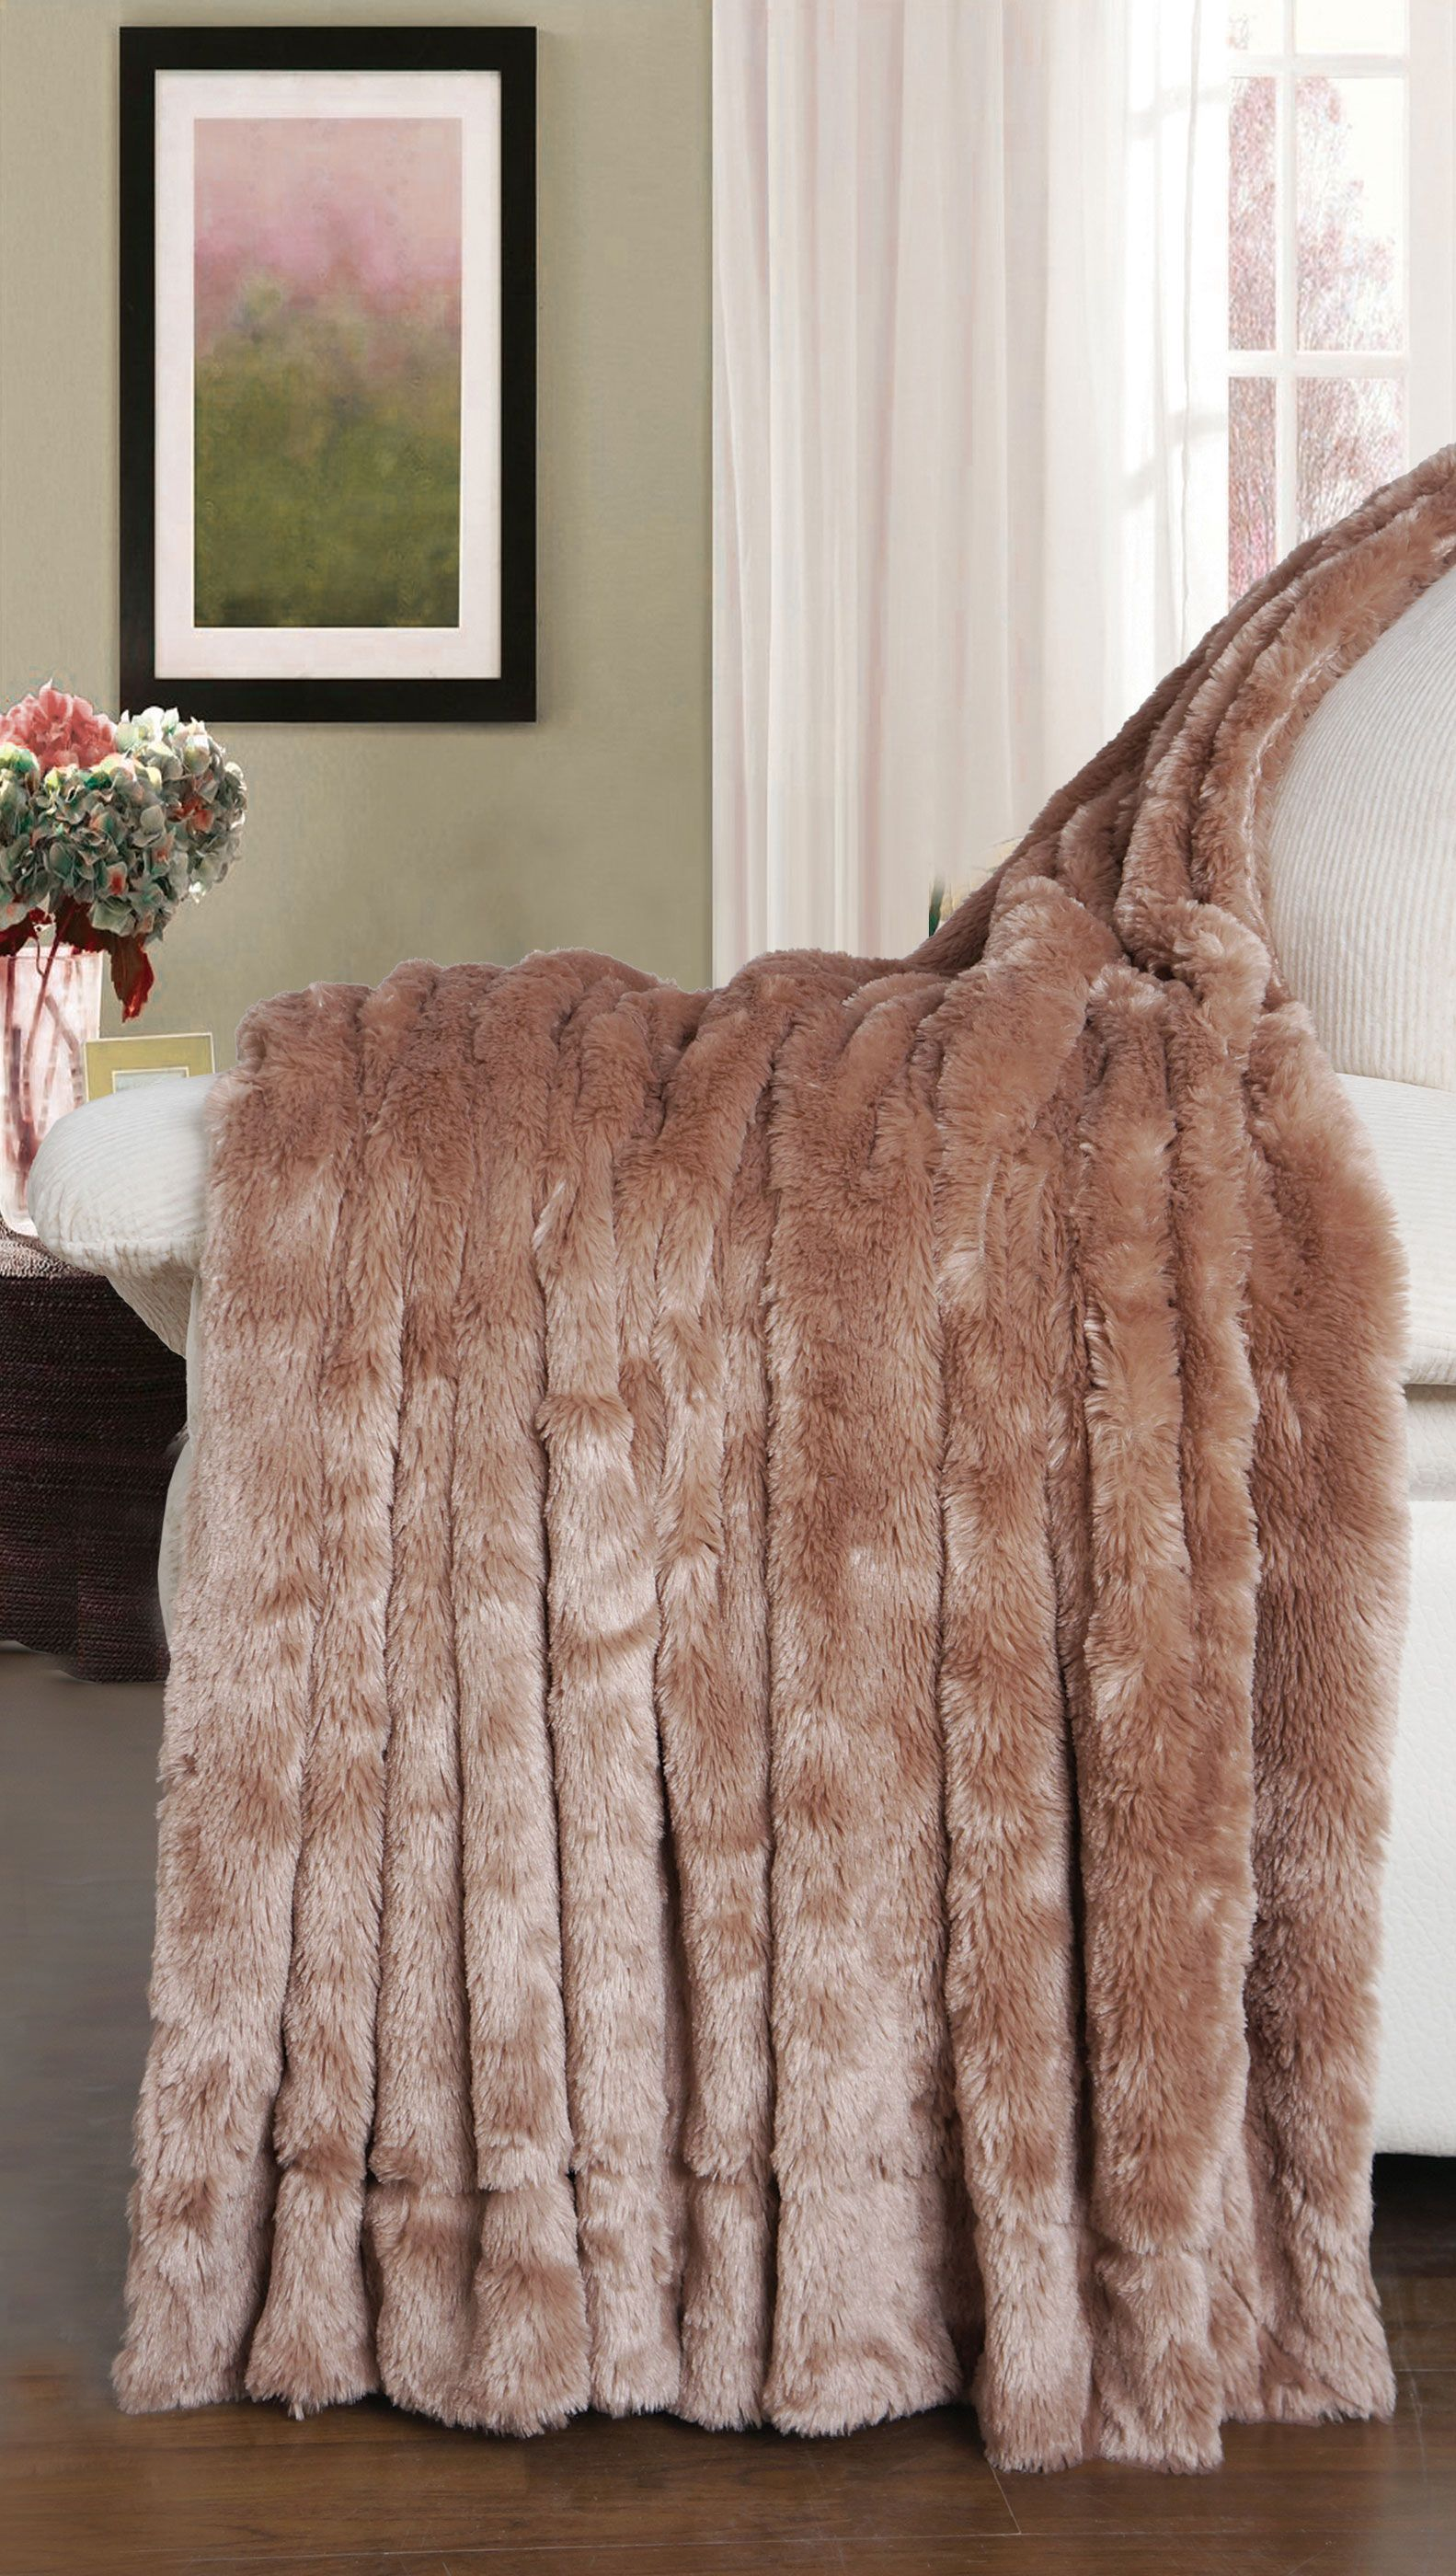 fur soft faux throw on free embossed orders bed over bath overstock super shipping bedding blanket product